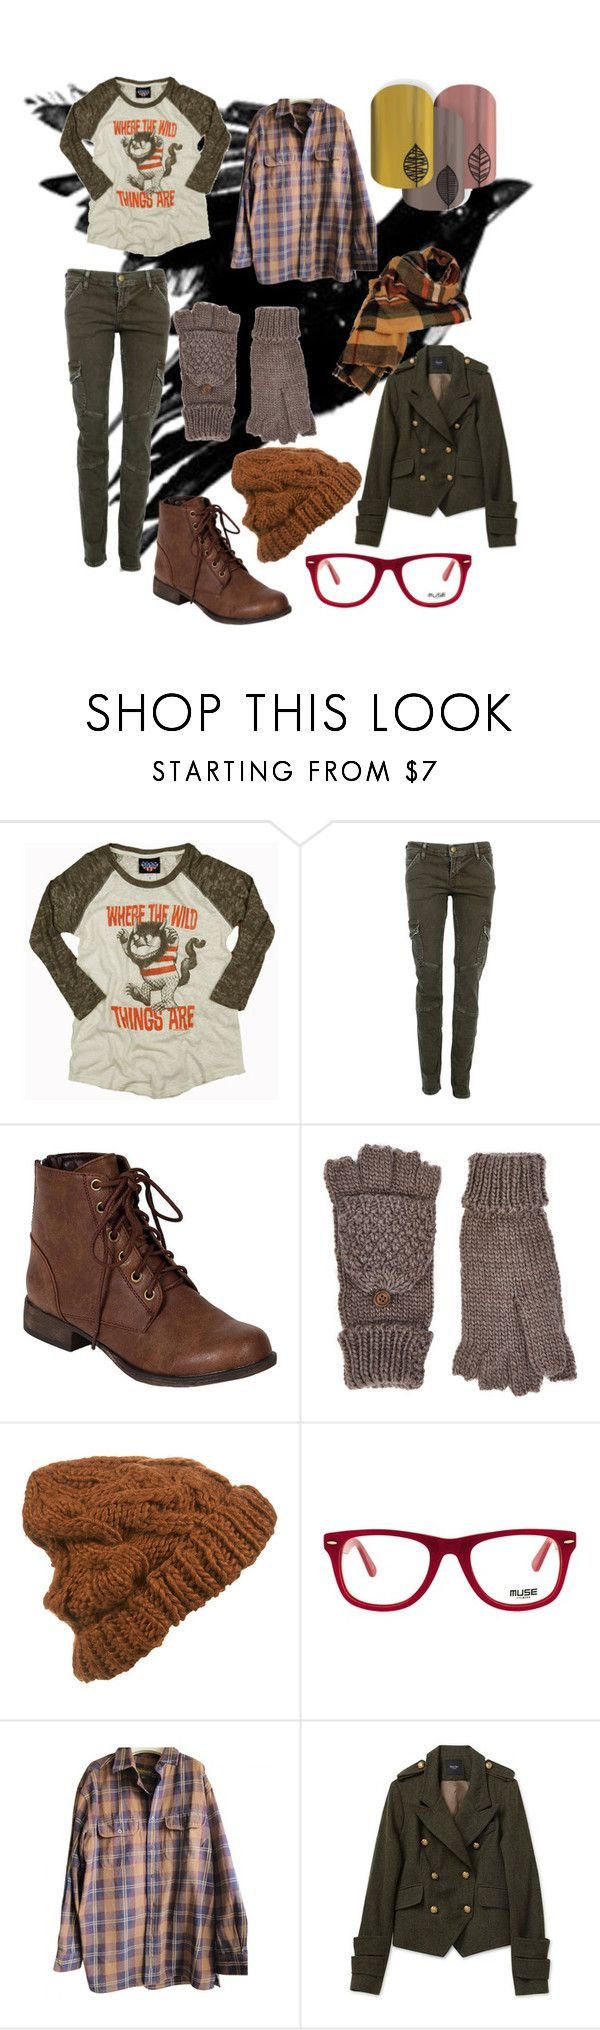 """Falling leaves"" by the-trickster-king ❤ liked on Polyvore featuring Junk Food Clothing, CARGO, Breckelle's, Accessorize, Muse, Timberland and Wilsons Leather"